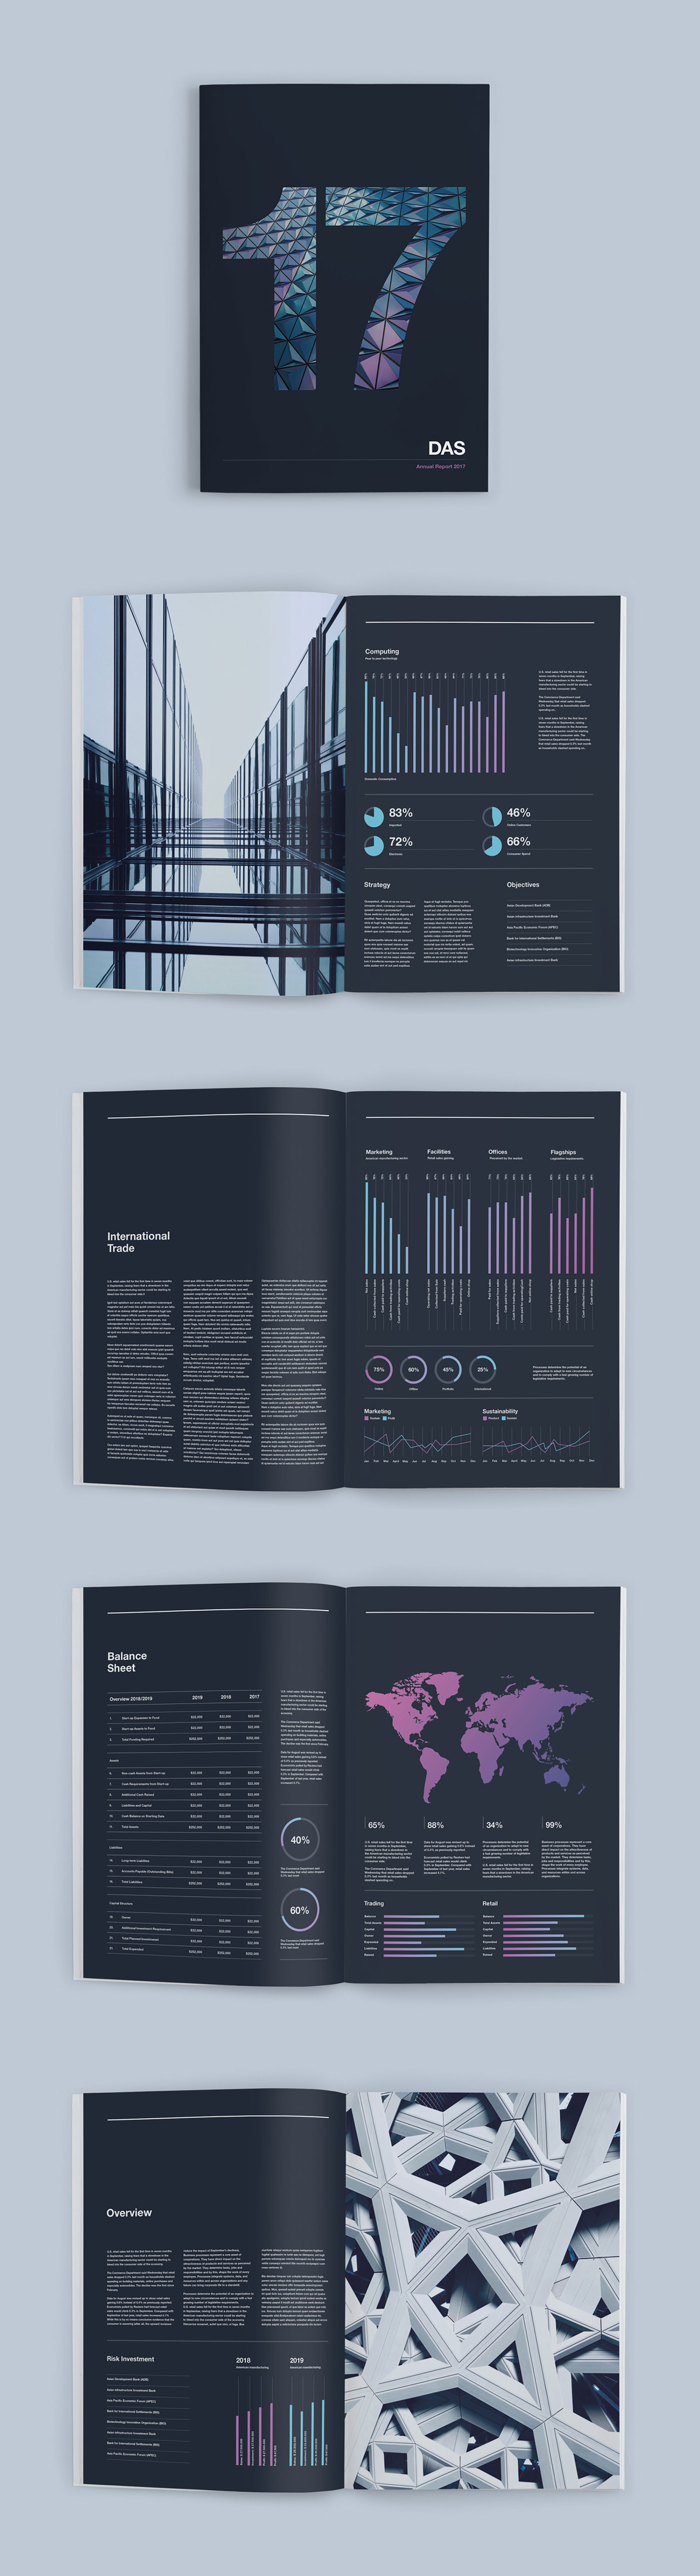 Annual Report Cover Design London Dublin